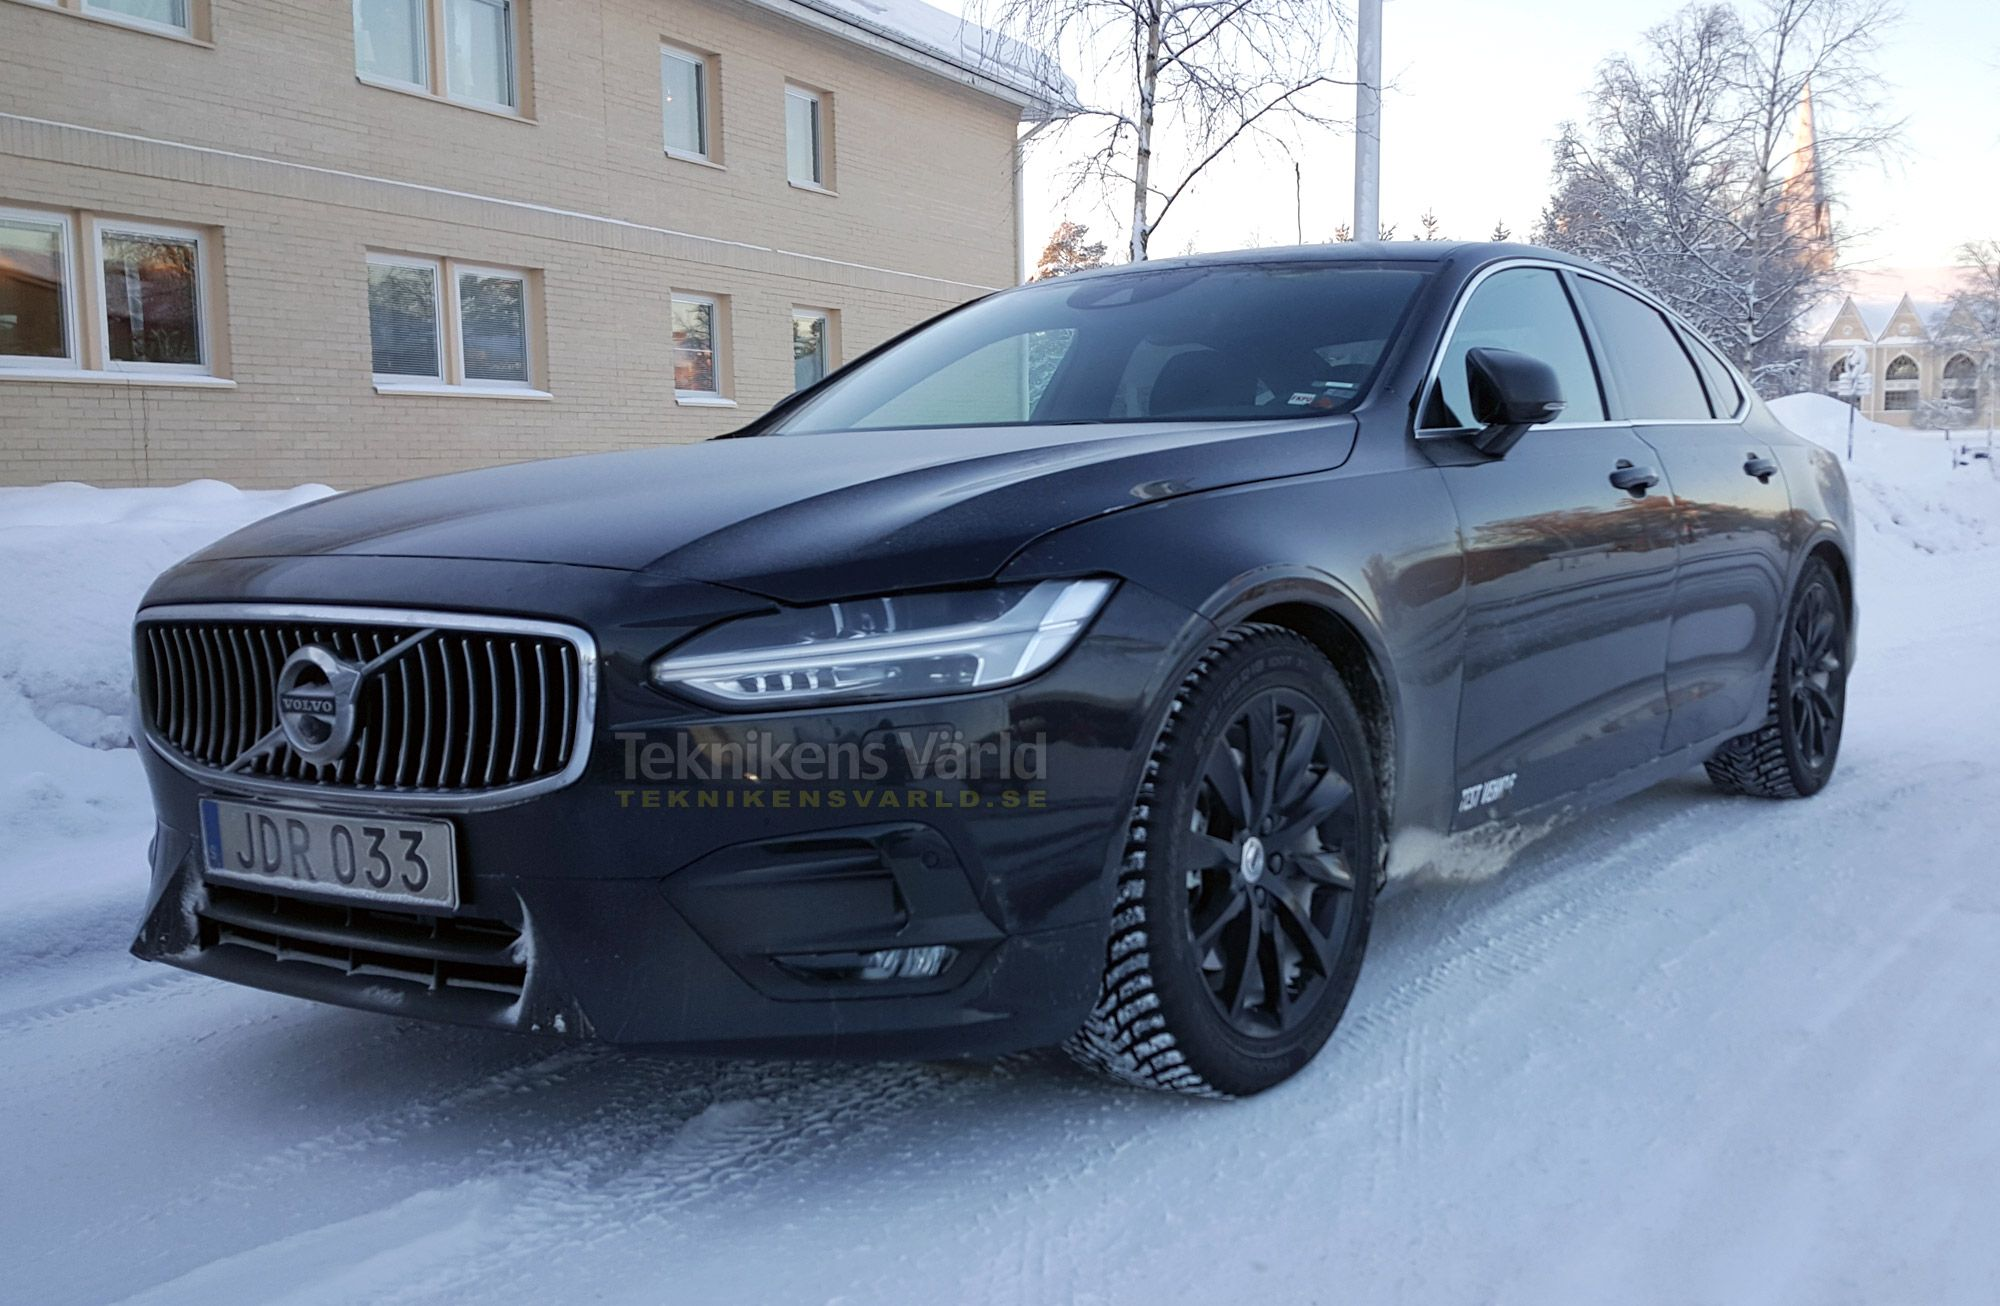 2016 volvo s90 a unique car because it is inspired by two car concepts cars pinterest volvo s90 unique cars and volvo